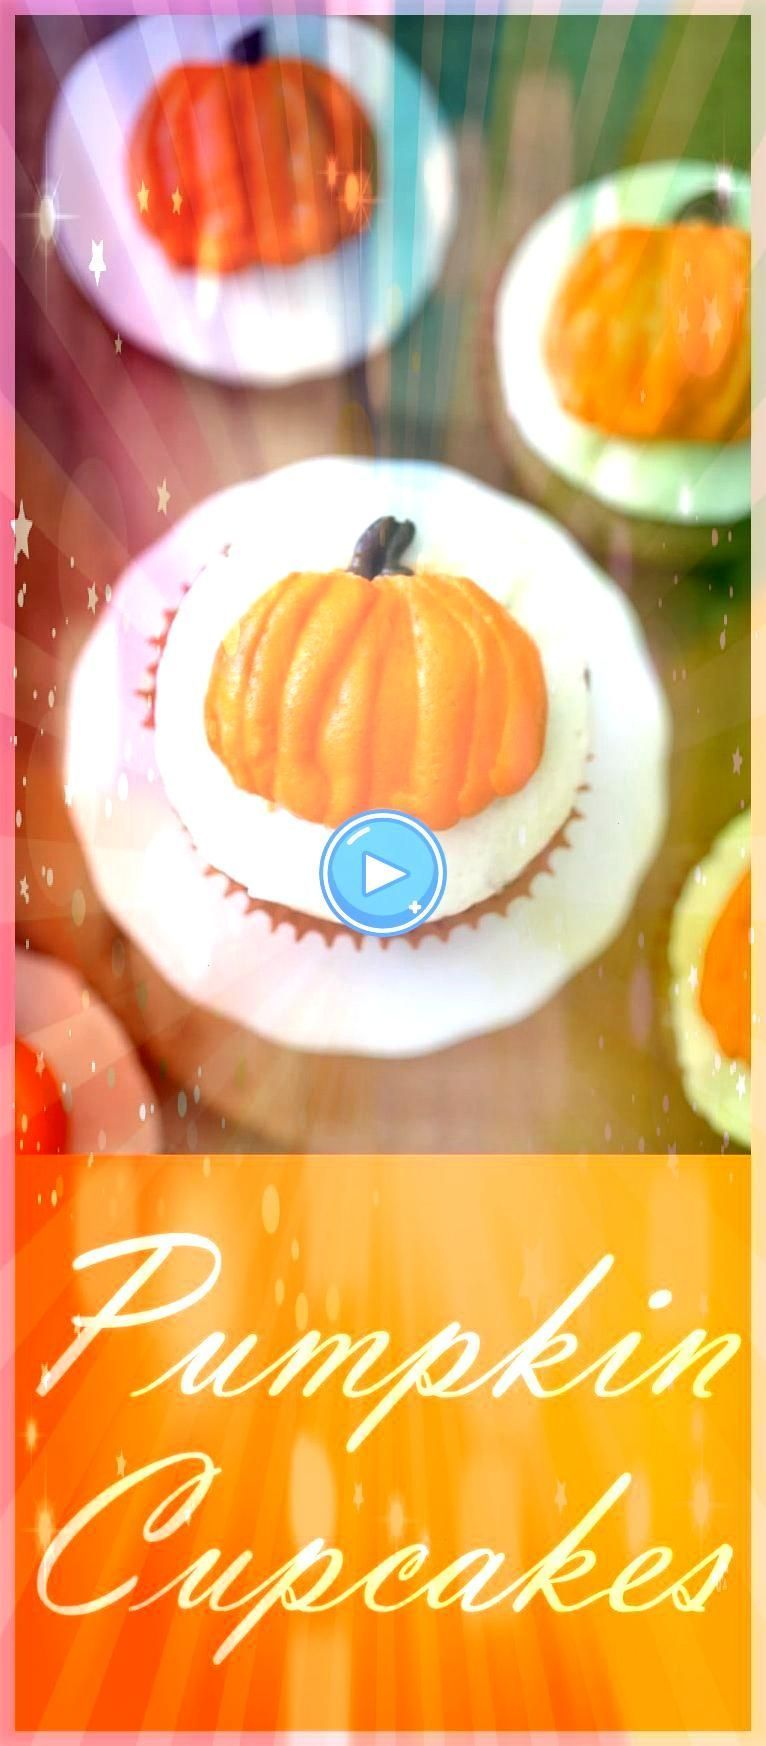 #pumpkinspicecupcakes #cupcakes #pumpkin #season #spice #these #the #and #arePumpkin Spice Cupcakes - The pumpkin season and these cupcakes are the ...,  Pumpkin Spice Cupcakes - The pumpkin season and these cupcakes are the ..., Pumpkin Spice Cupcakes - The pumpkin season and these cupcakes are the ...,  Pumpkin Spice Cupcakes - The pumpkin season and these cupcakes are the ...,   Clever way to cook pasta and wilt greens (and steam fish).  These moist, delicious, pillowy soft pumpkin cup... #pu #pumpkinspicecupcakes